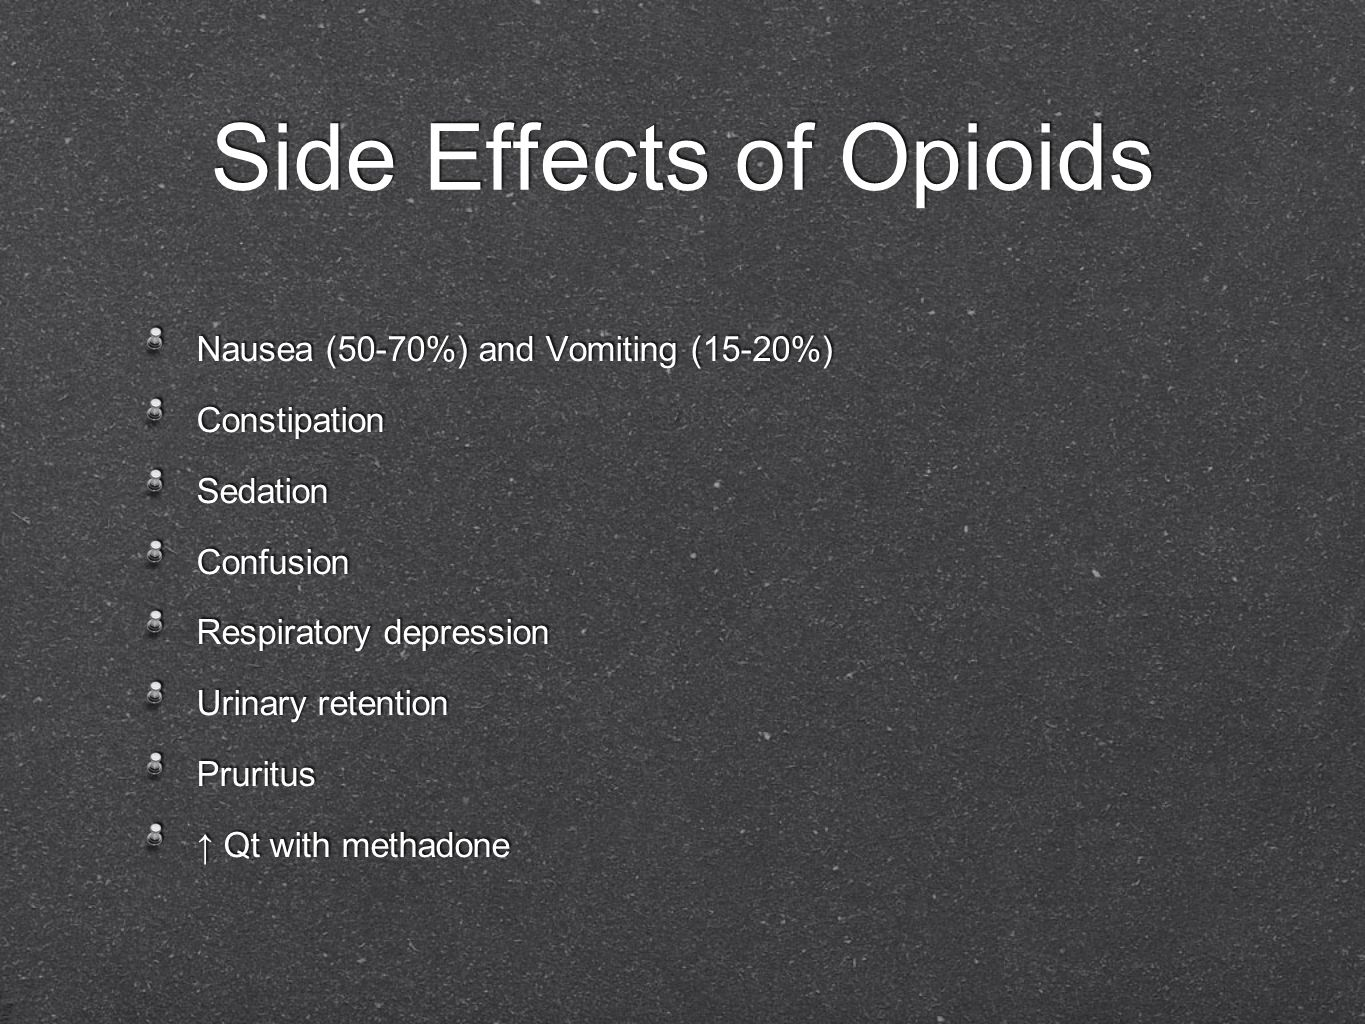 Side Effects of Opioids Nausea (50-70%) and Vomiting (15-20%) Constipation Sedation Confusion Respiratory depression Urinary retention Pruritus Qt wit